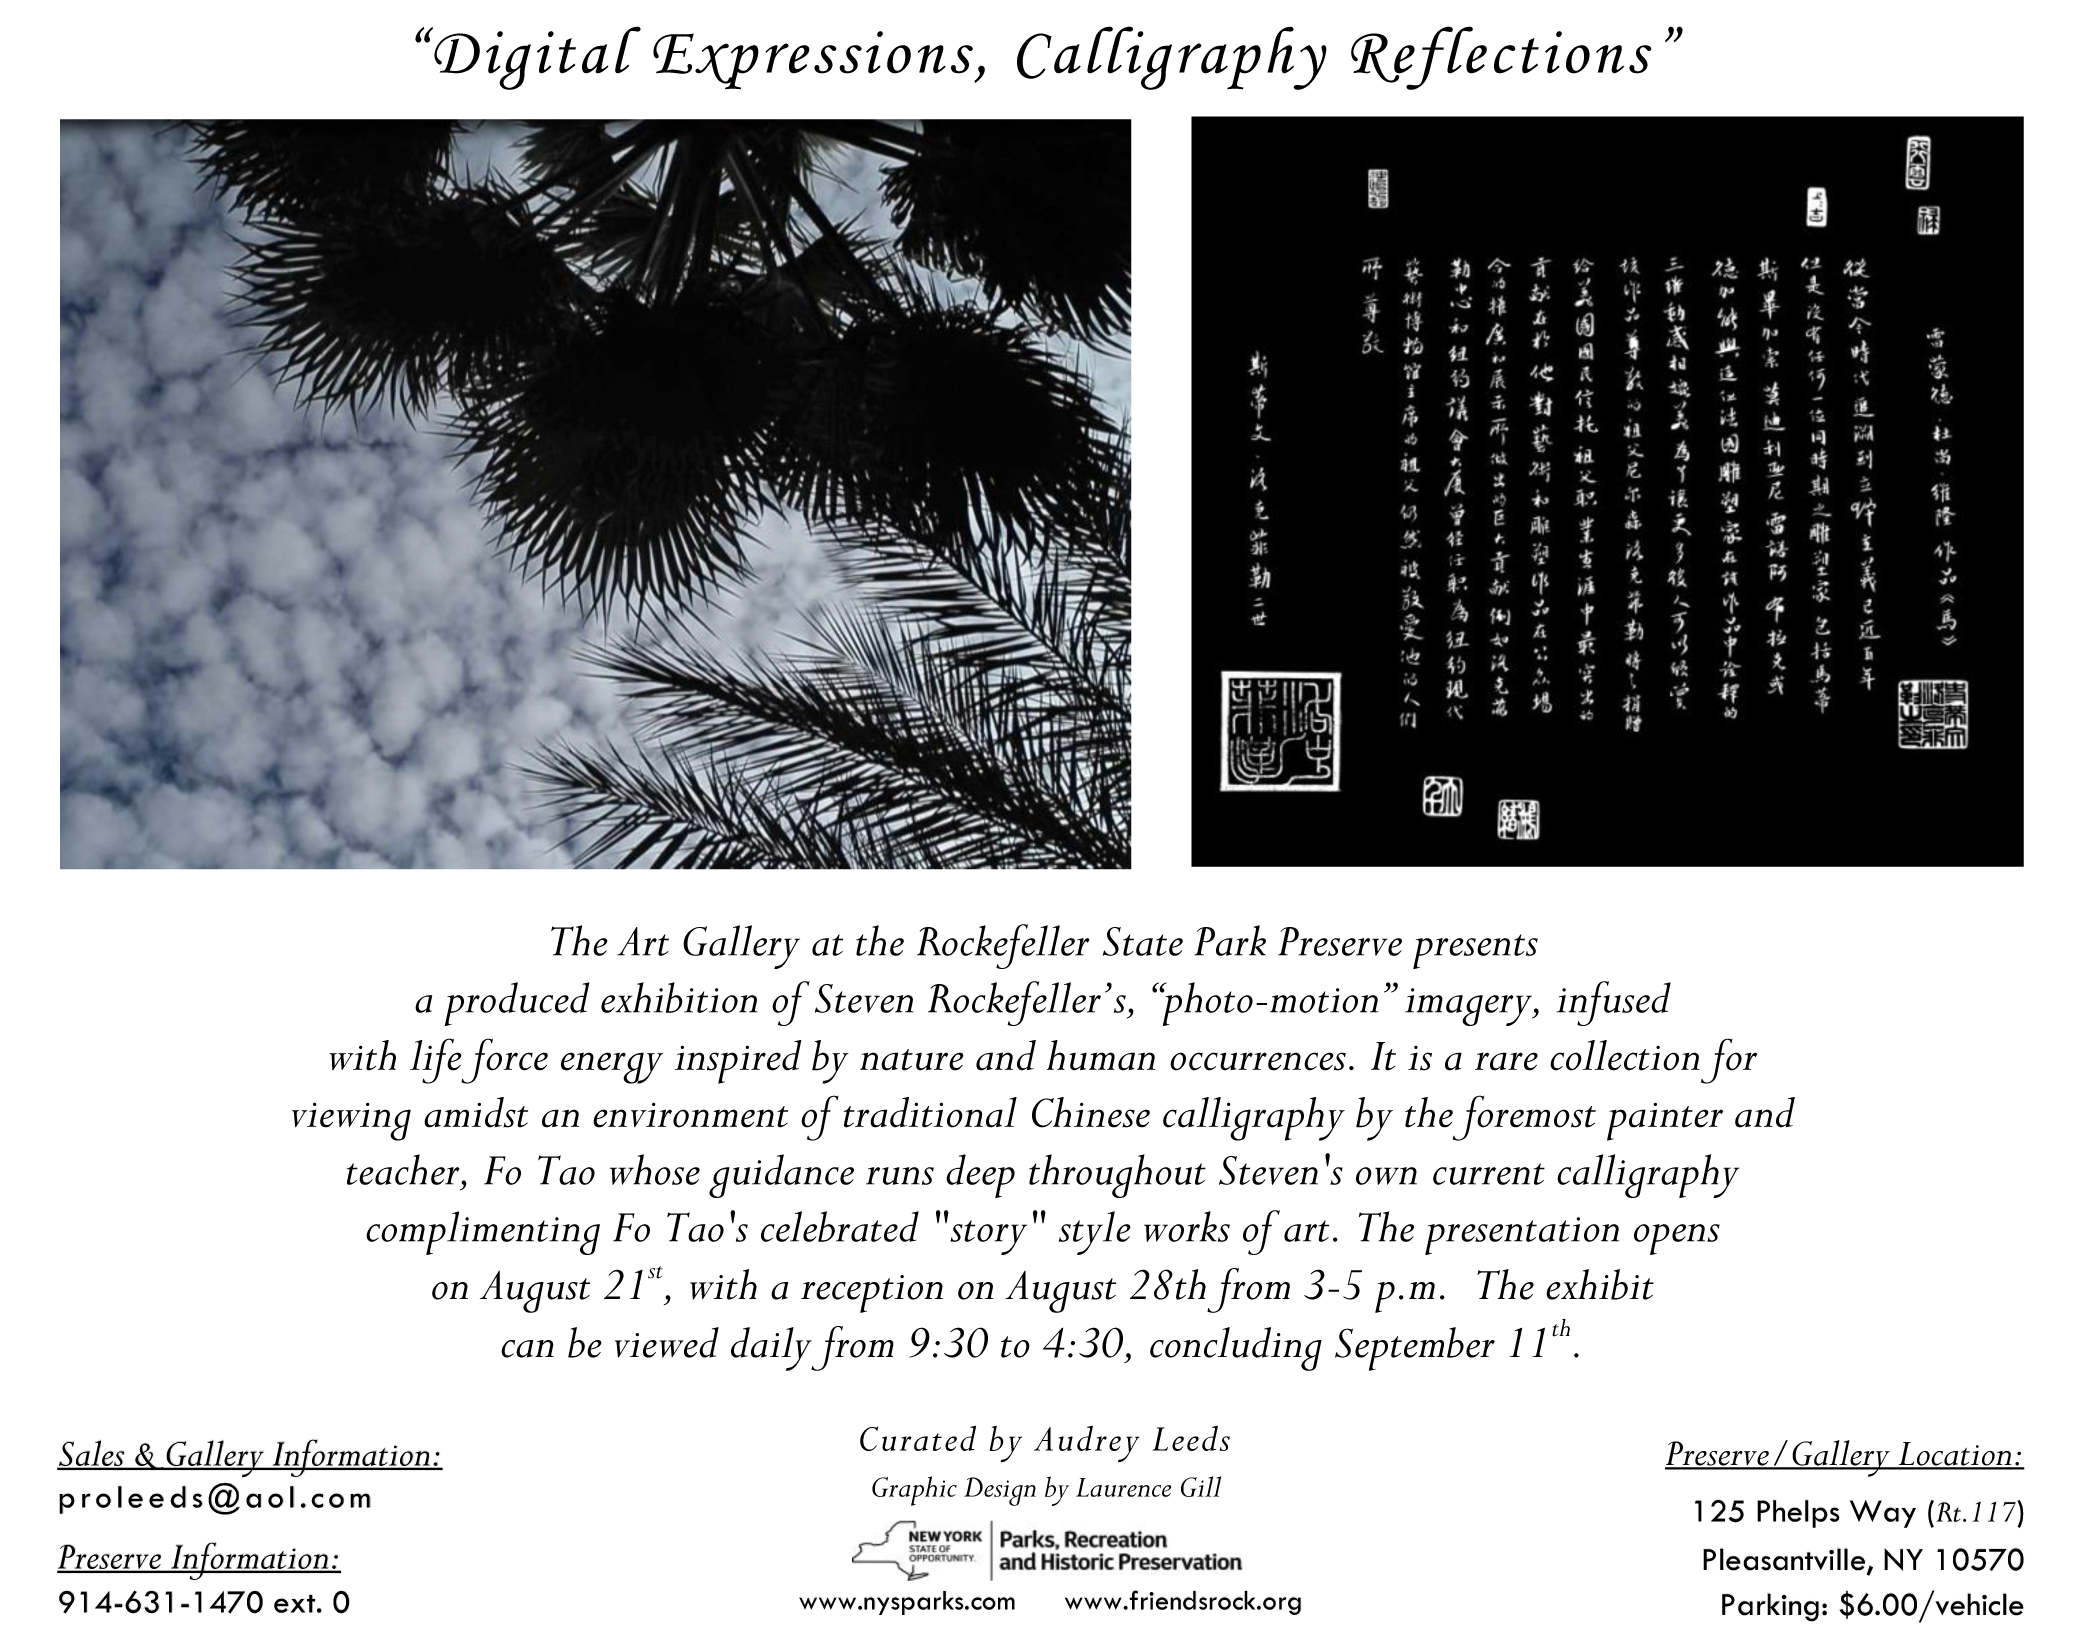 Digital Expressions, Calligraphy Reflections